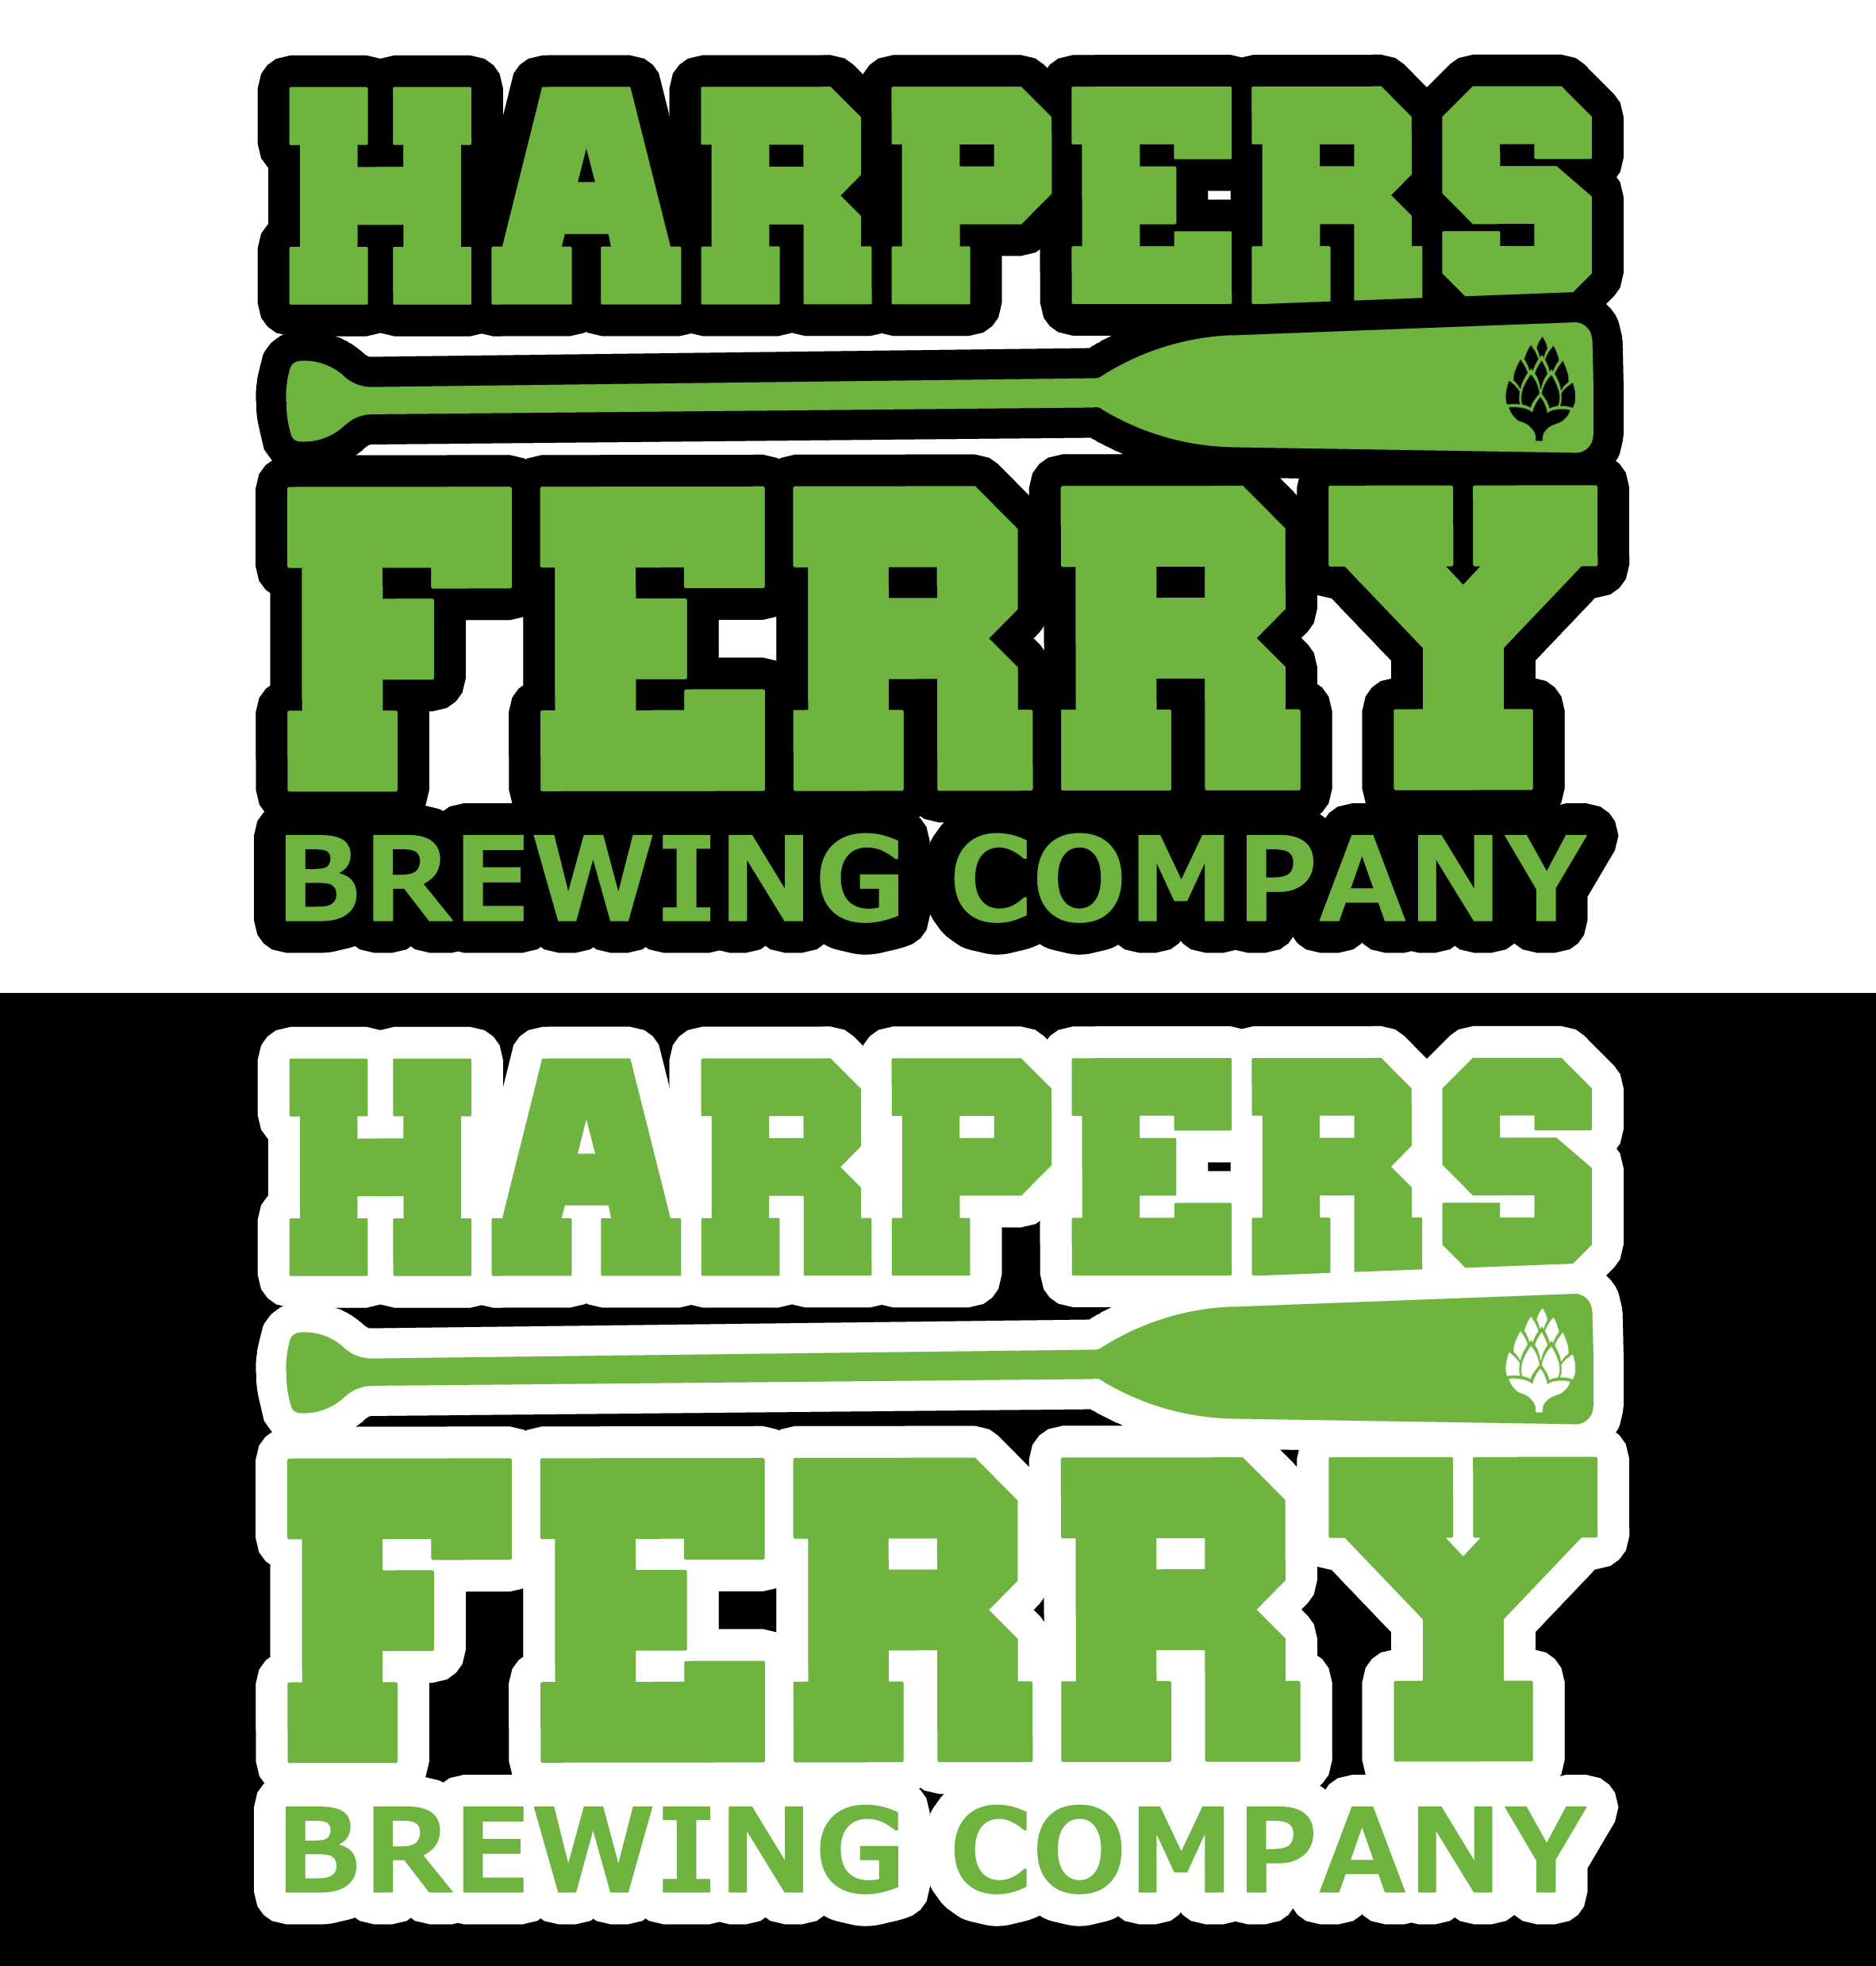 Logo Design by JSDESIGNGROUP - Entry No. 131 in the Logo Design Contest Unique Logo Design Wanted for Harpers ferry brewing company.